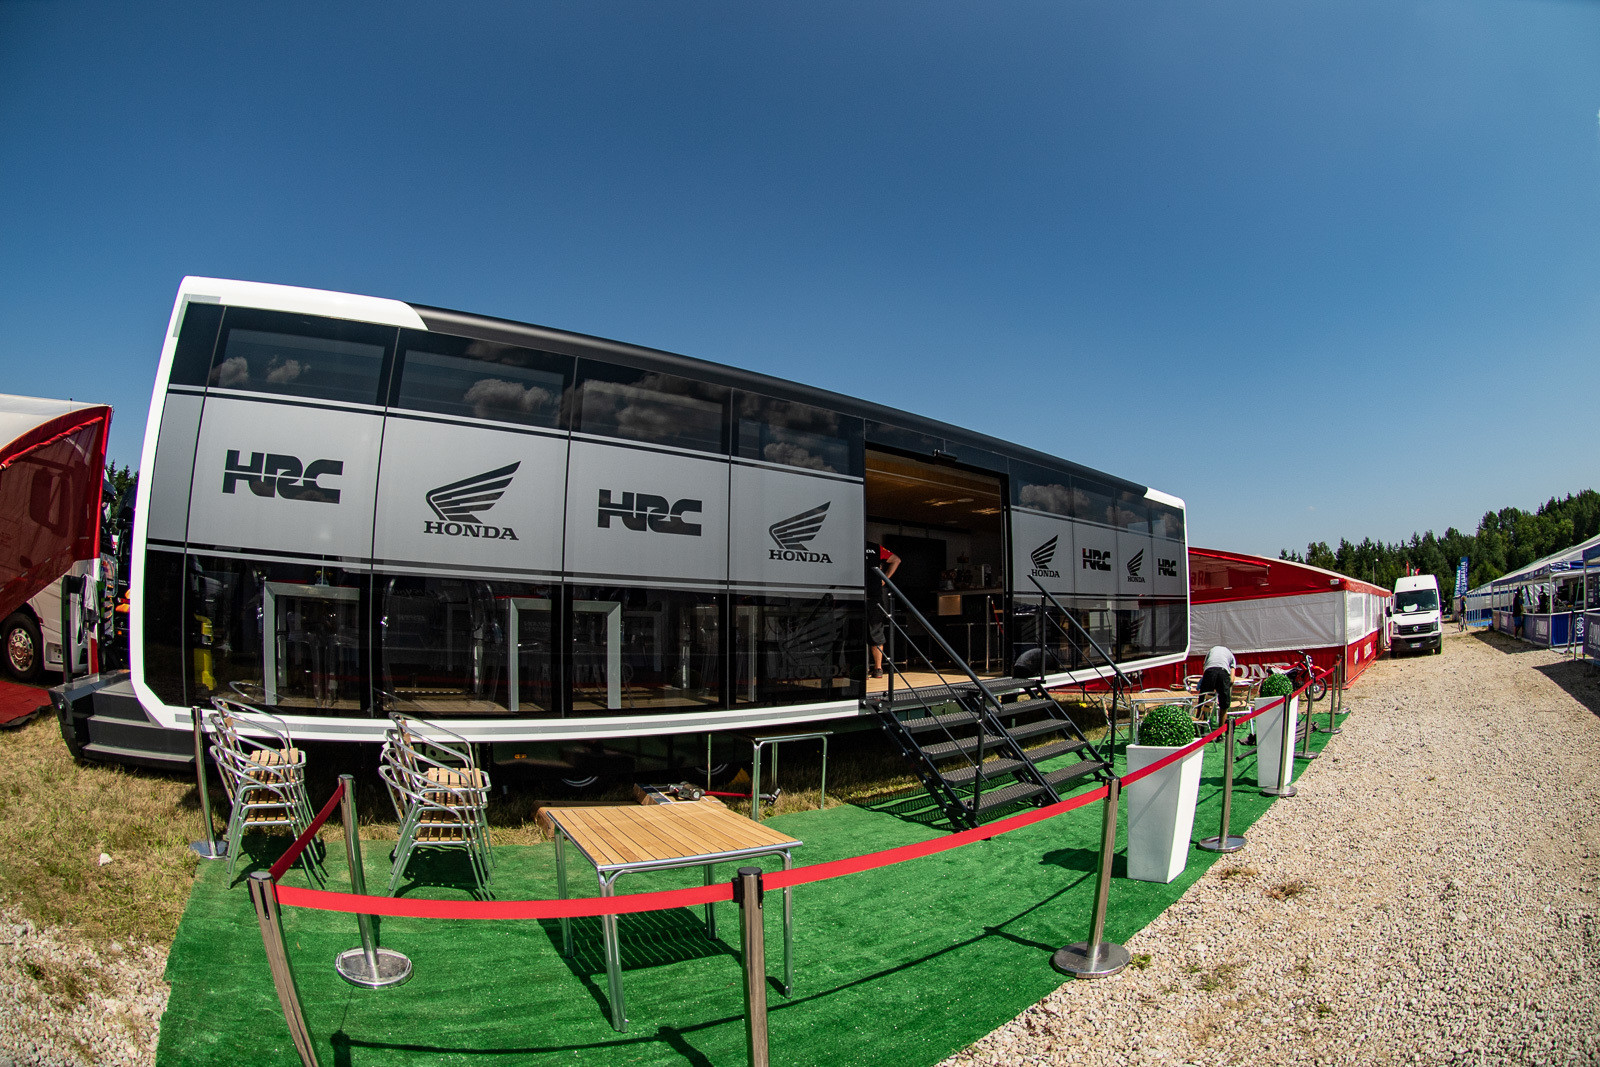 Ah yes, they do things a bit differently in the GPs. For example, this HRC hospitality setup.